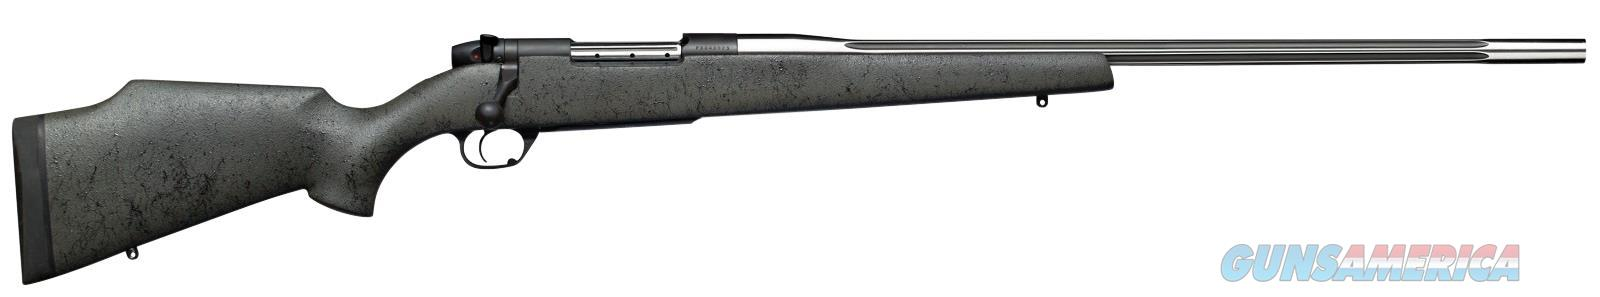 WEATHERBY 240WBY MKV ACCUMARK RC 24 GRYBLK WEB MARS240WR4O  Guns > Rifles > Weatherby Rifles > Sporting